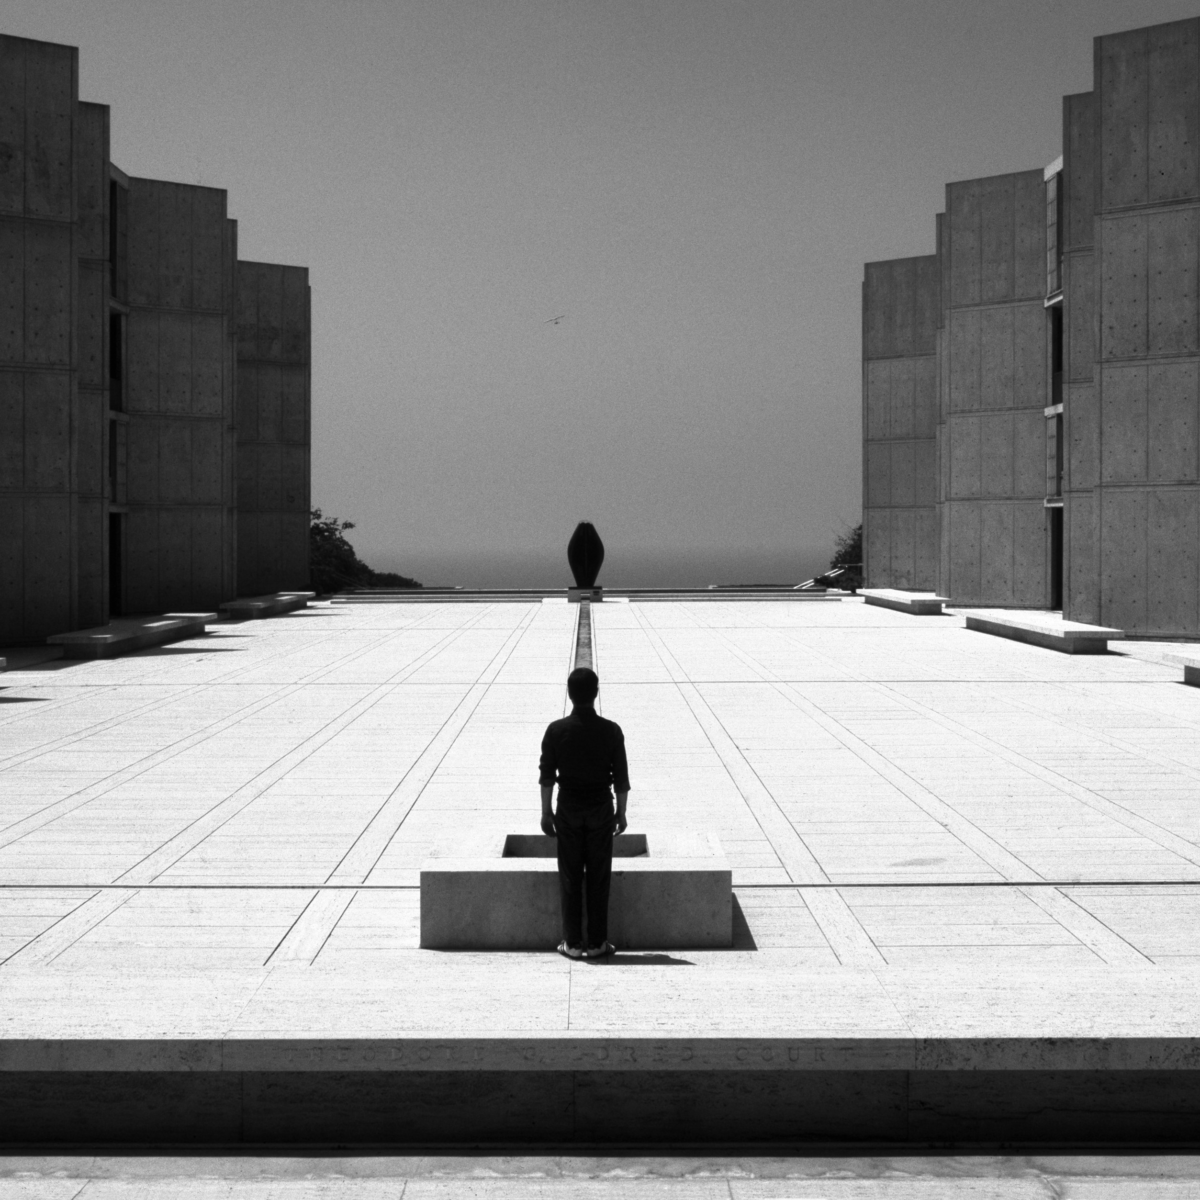 © Wei-ming Yuan, Salk Institute for Biological Studies, 1993, Courtesy KLV Art Projects